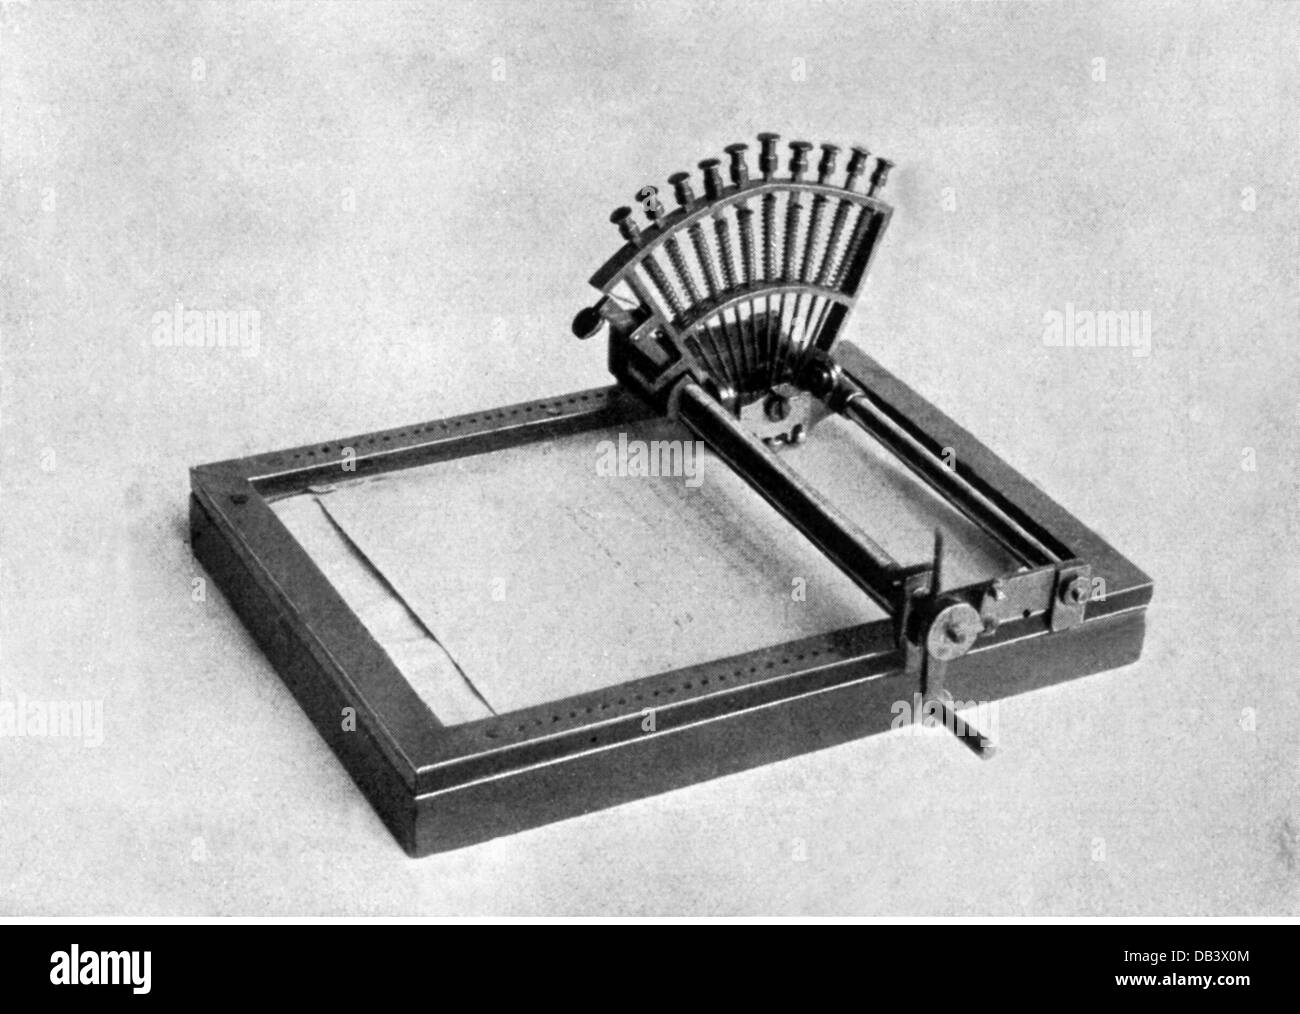 office office equipment typewriter Le Raphigraphe by Stock Photo